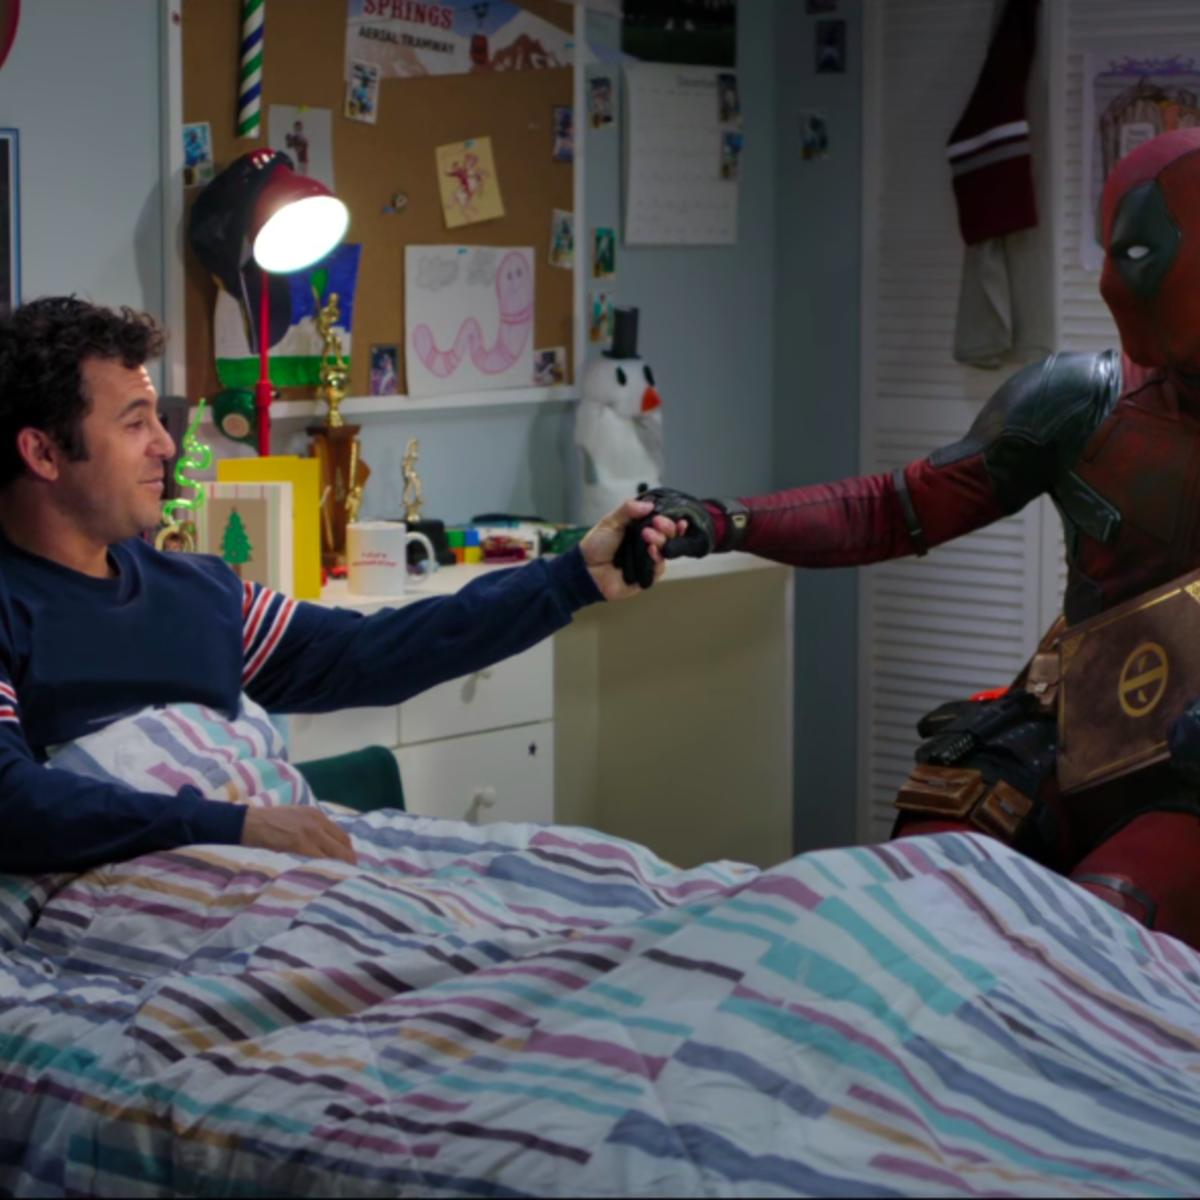 Deadpool defends Nickelback in new 'Once Upon a Deadpool' teaser